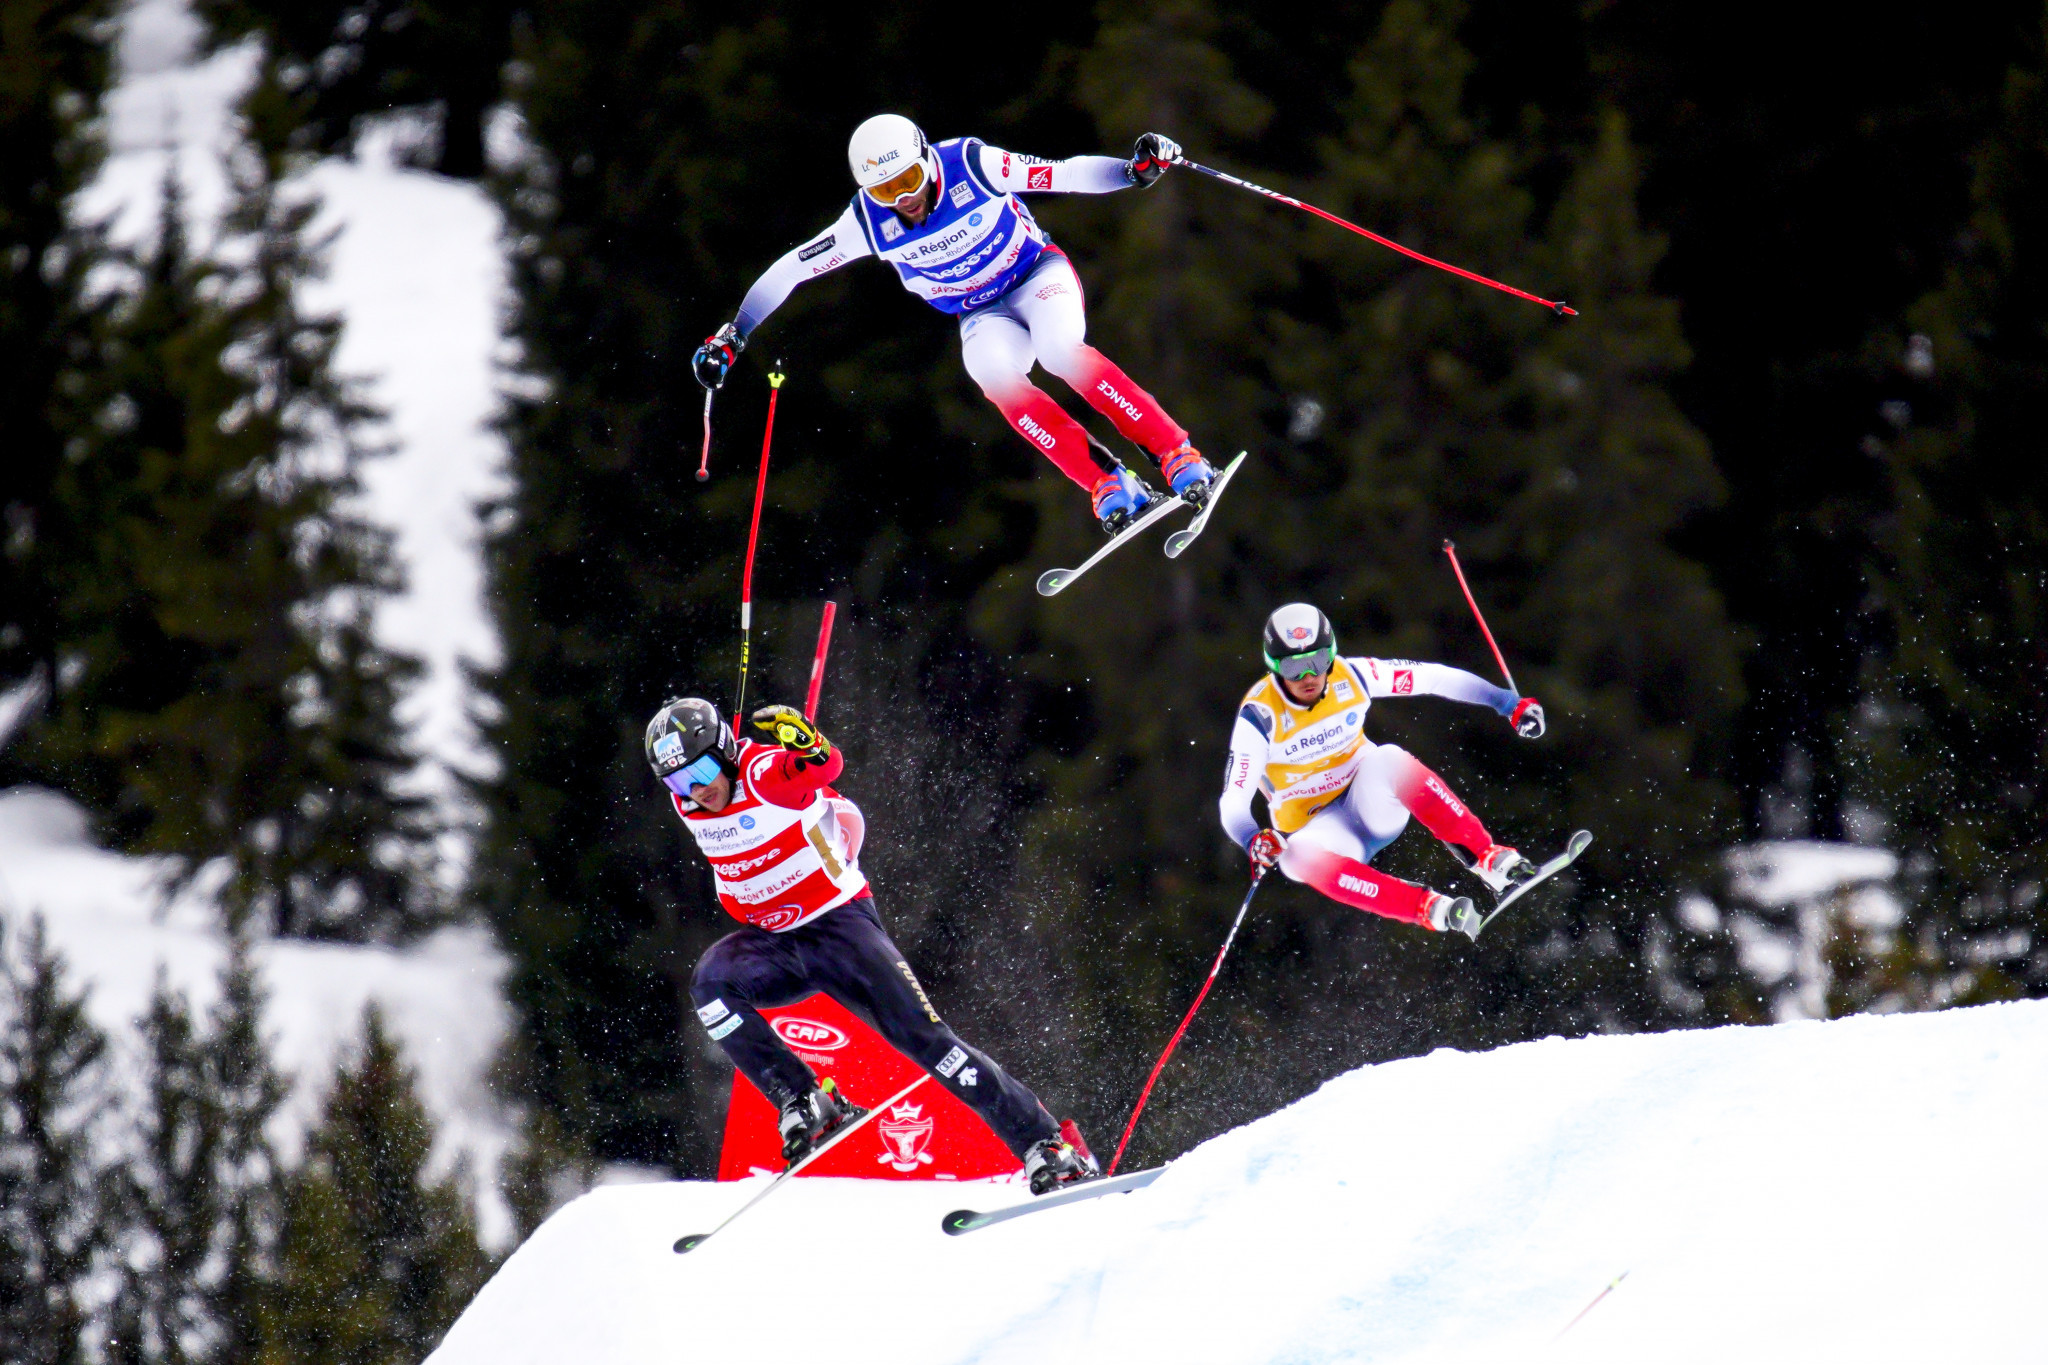 Drury extends overall lead with victory at FIS Ski Cross World Cup